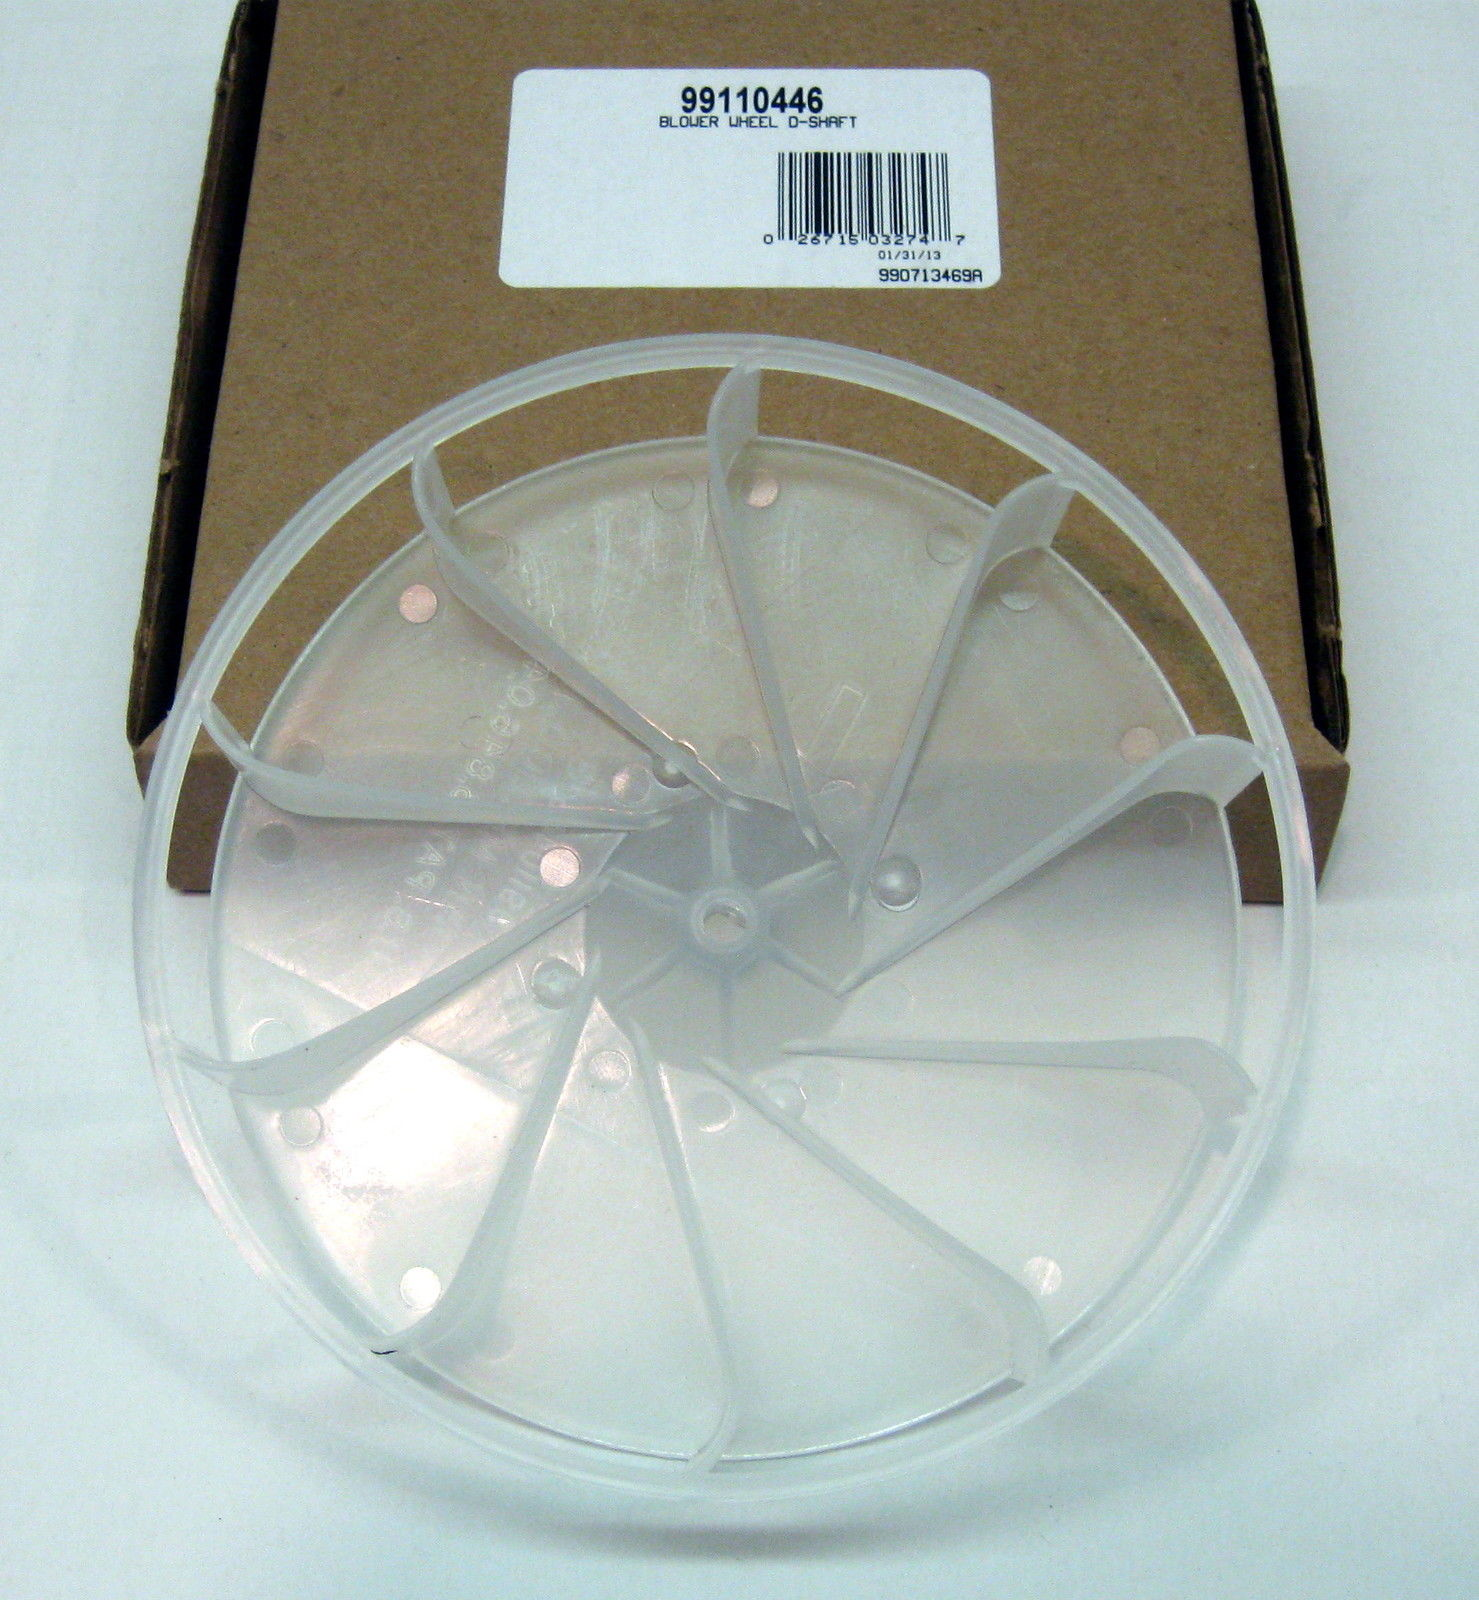 Squirrel Cage Fan Blades : Broan nutone vent fan blower wheel plastic